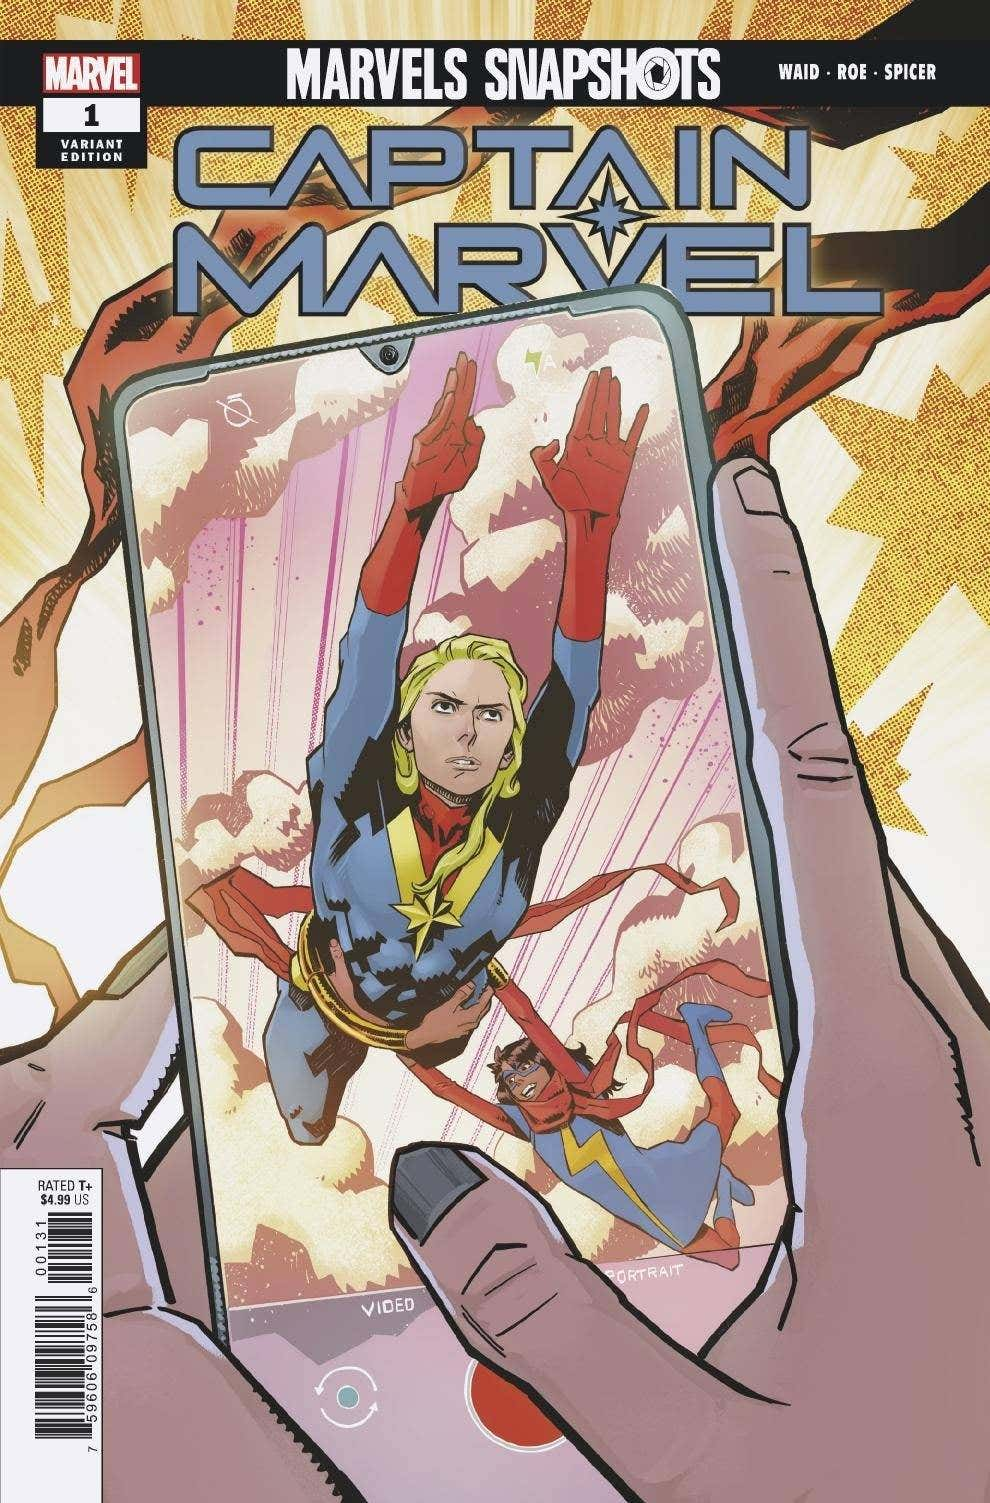 Captain Marvel: Marvels Snapshots #1 Cover by Claire Roe